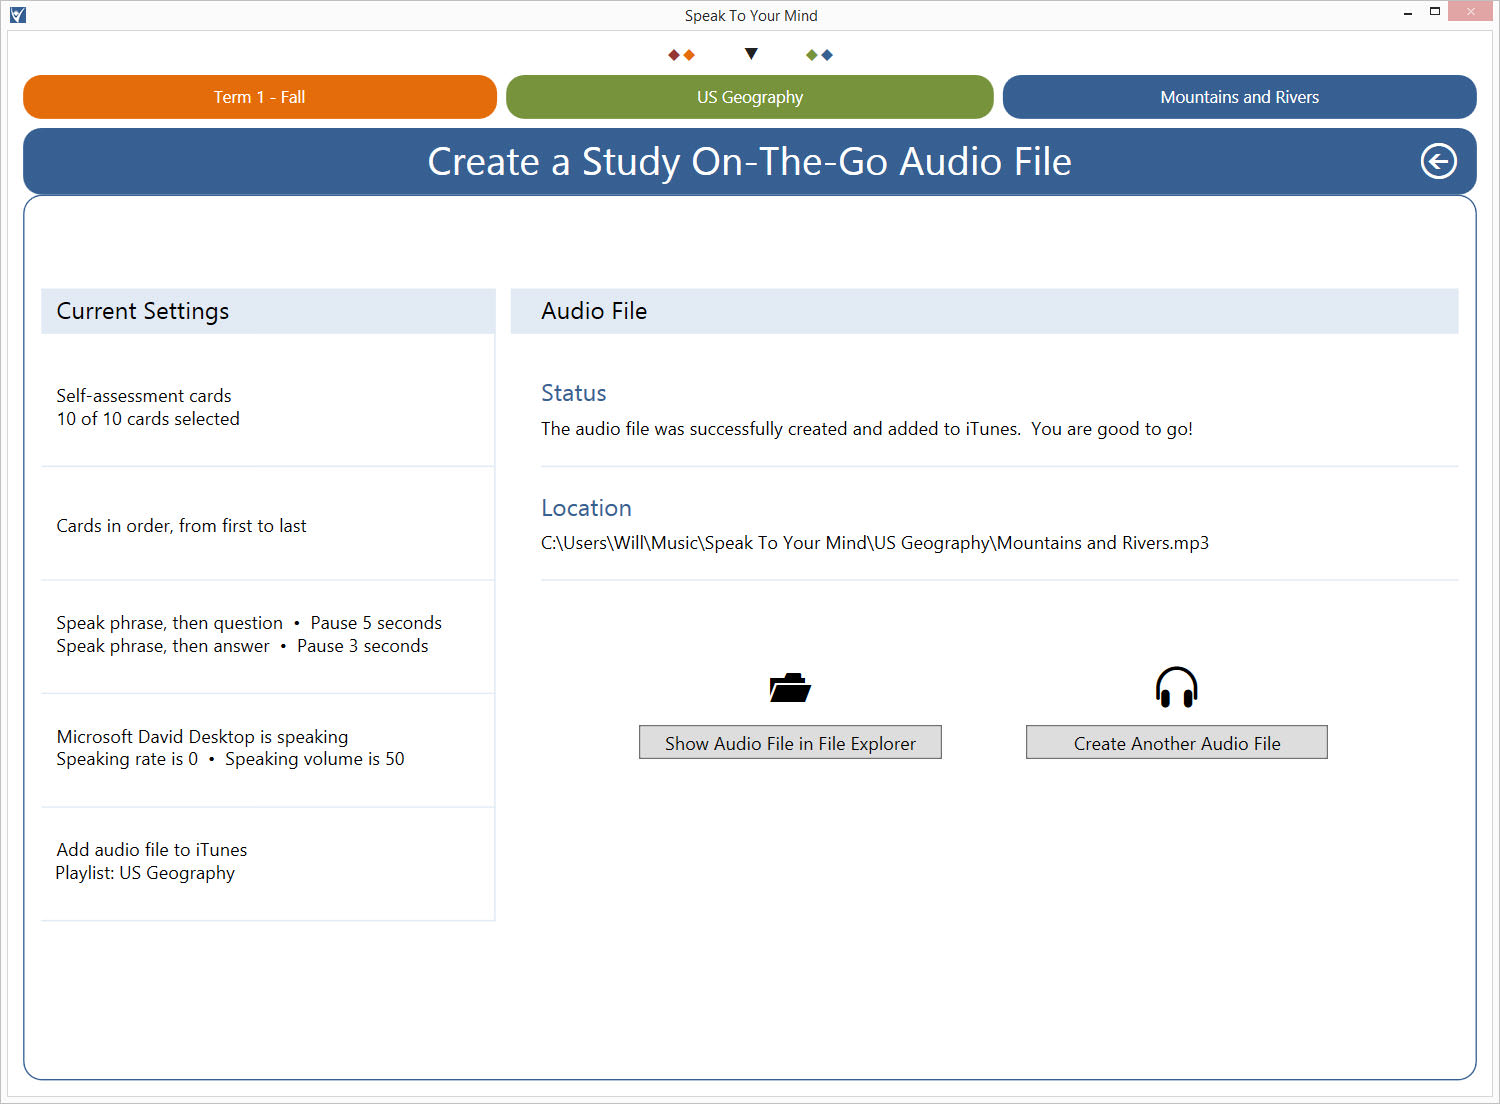 The outcome screen lets you know the final status of your custom mp3 audio file